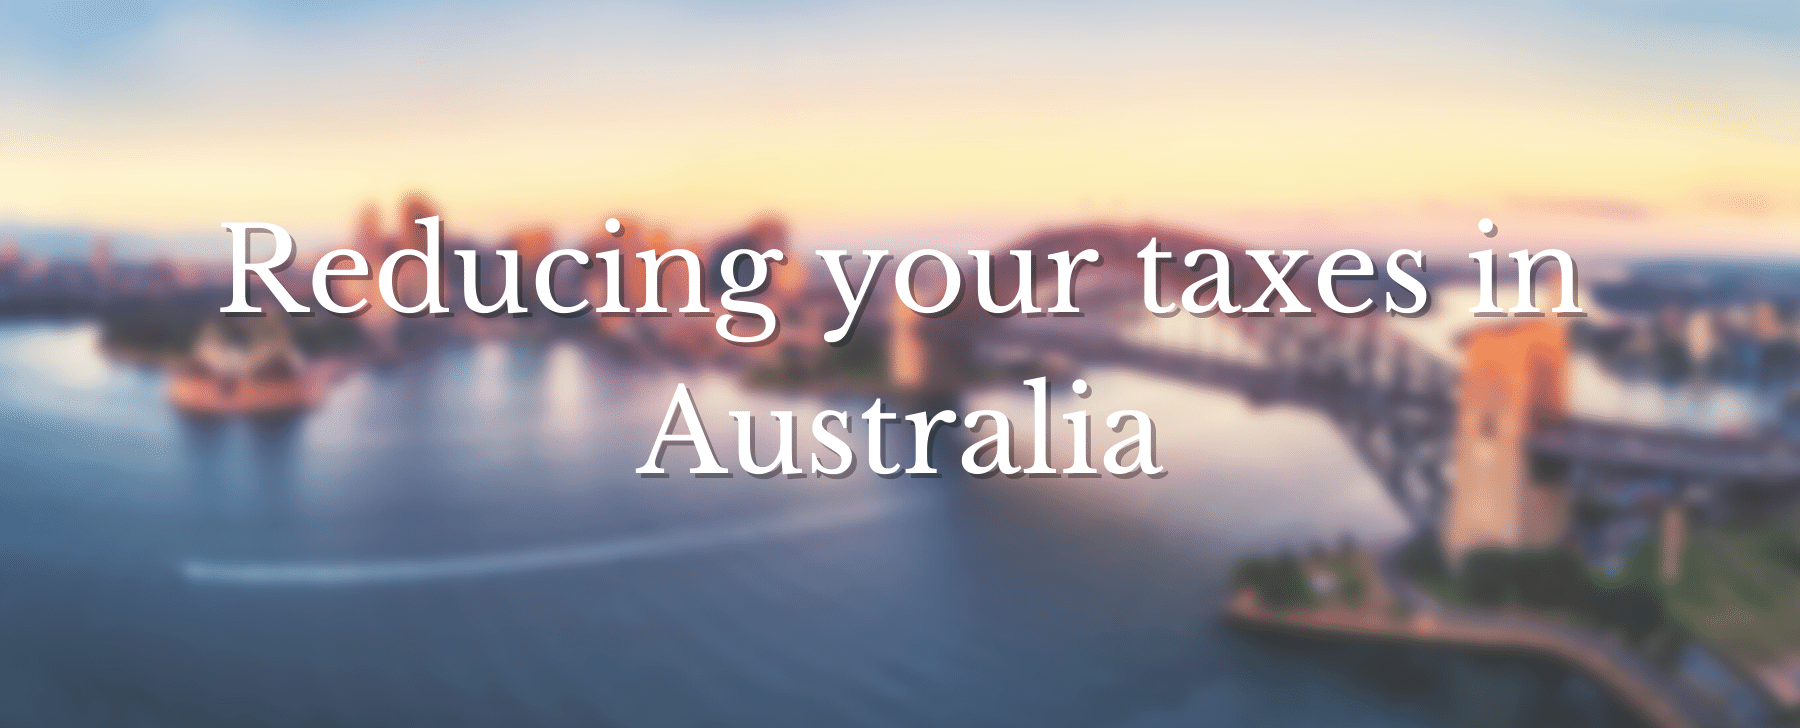 How do high income earners reduce taxes in Australia